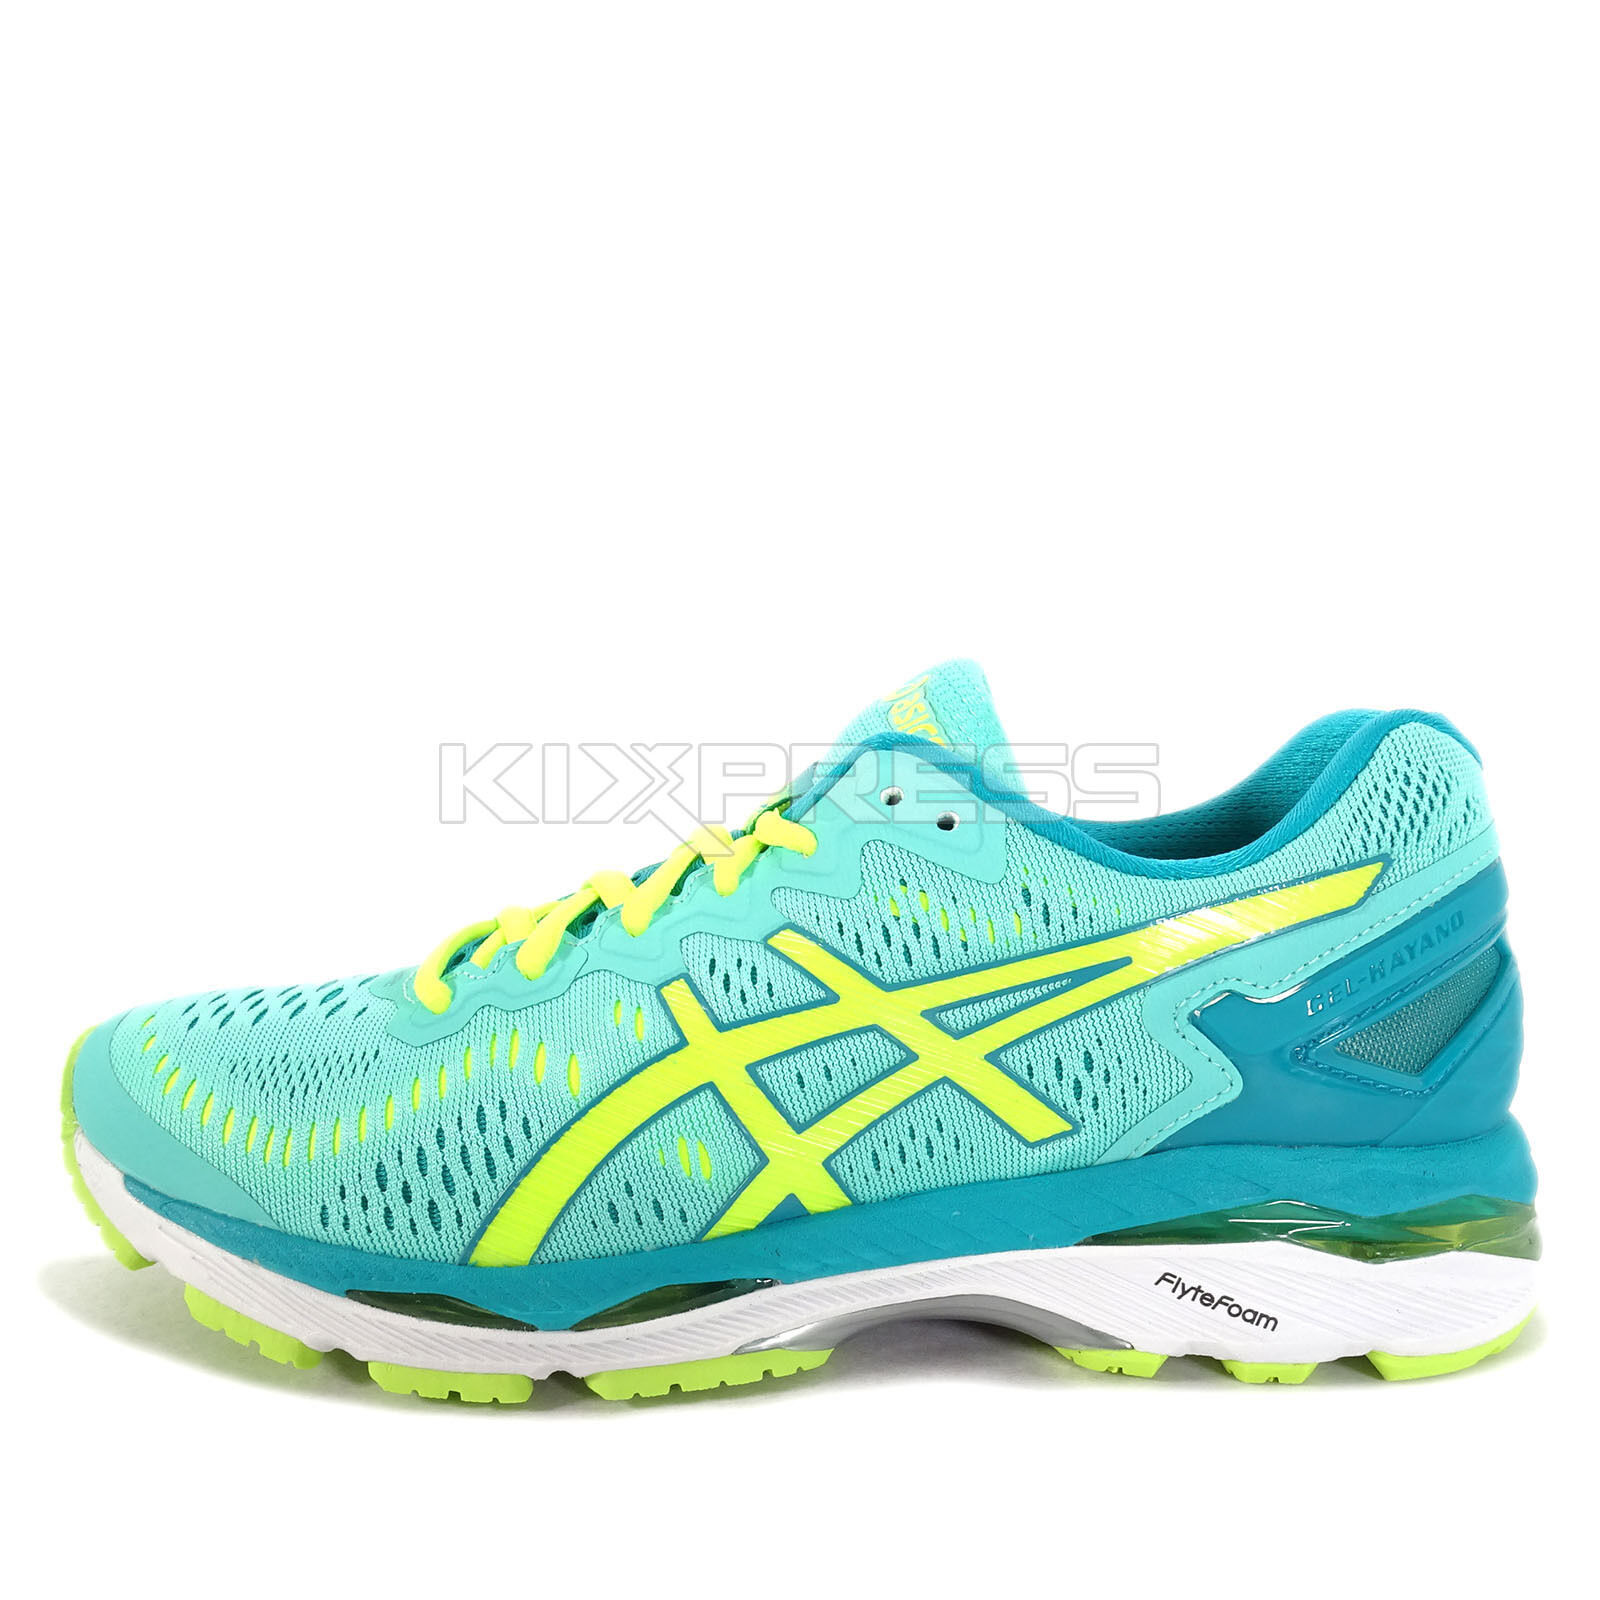 Asics GEL-Kayano  23 [T696N-3807] Running Green Volt-Teal  save on clearance